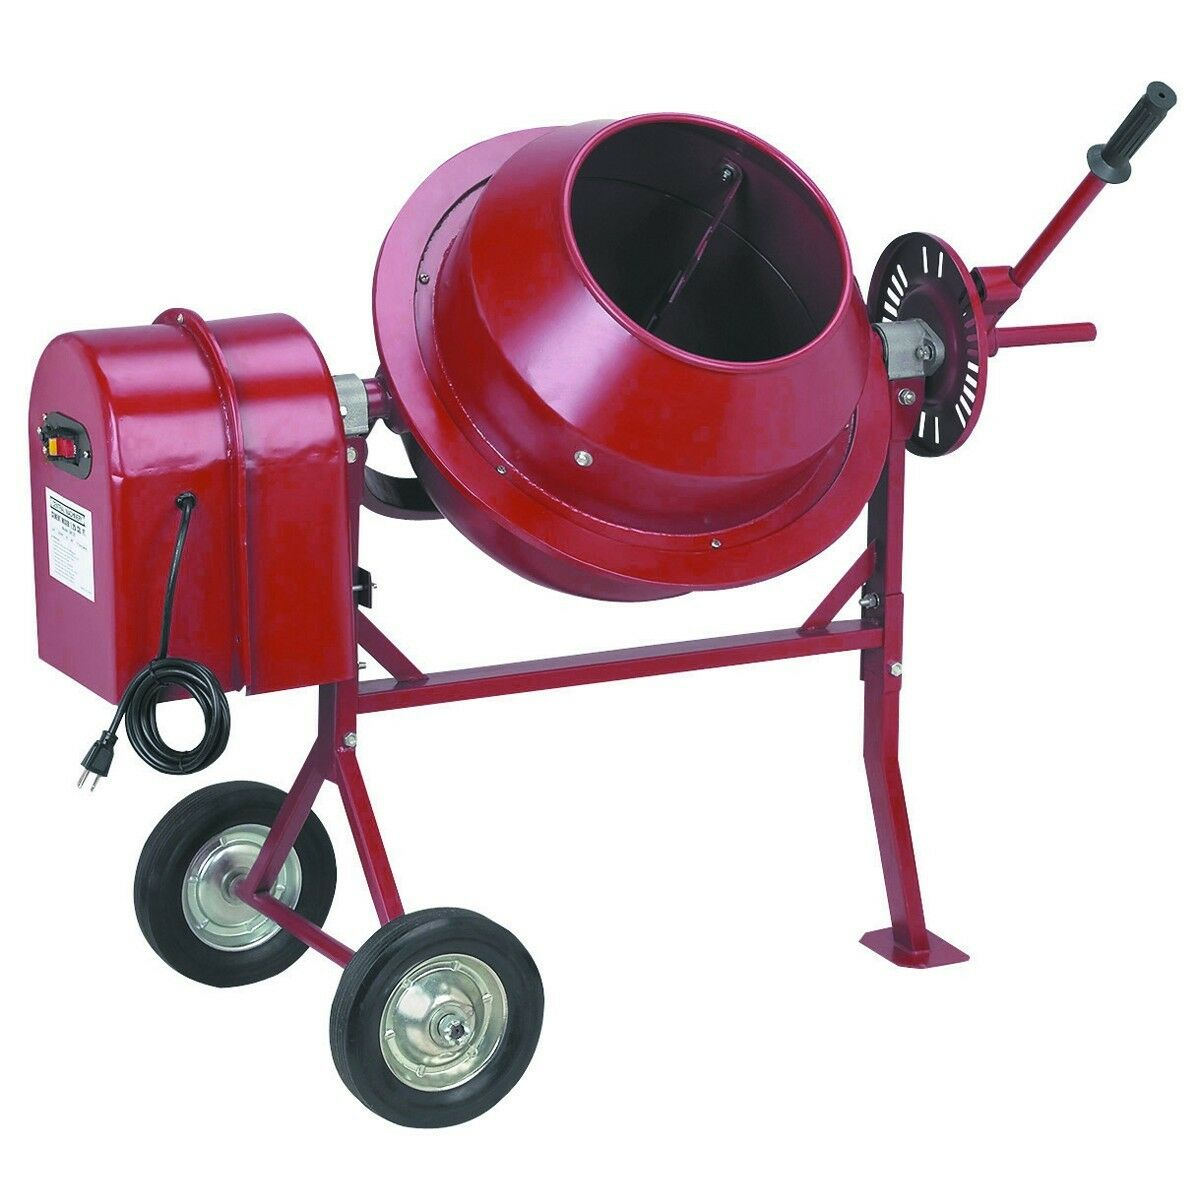 Cement mixer lowes electric loft staircase